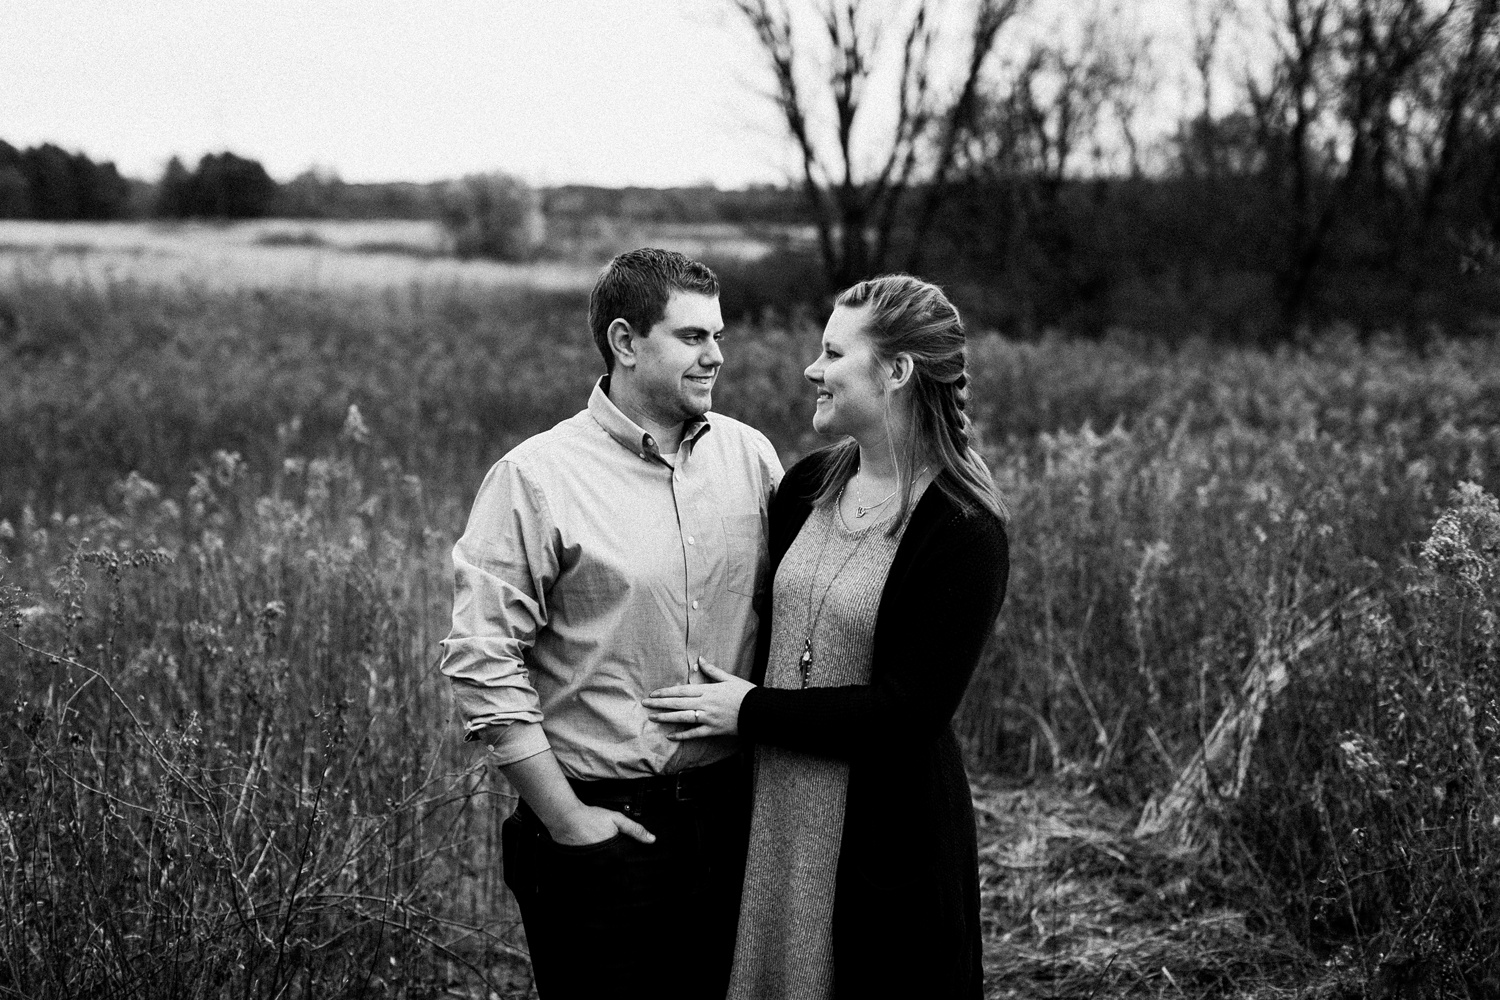 rock_cut_state_park_rockford_IL_engagement_photographer_0002.jpg